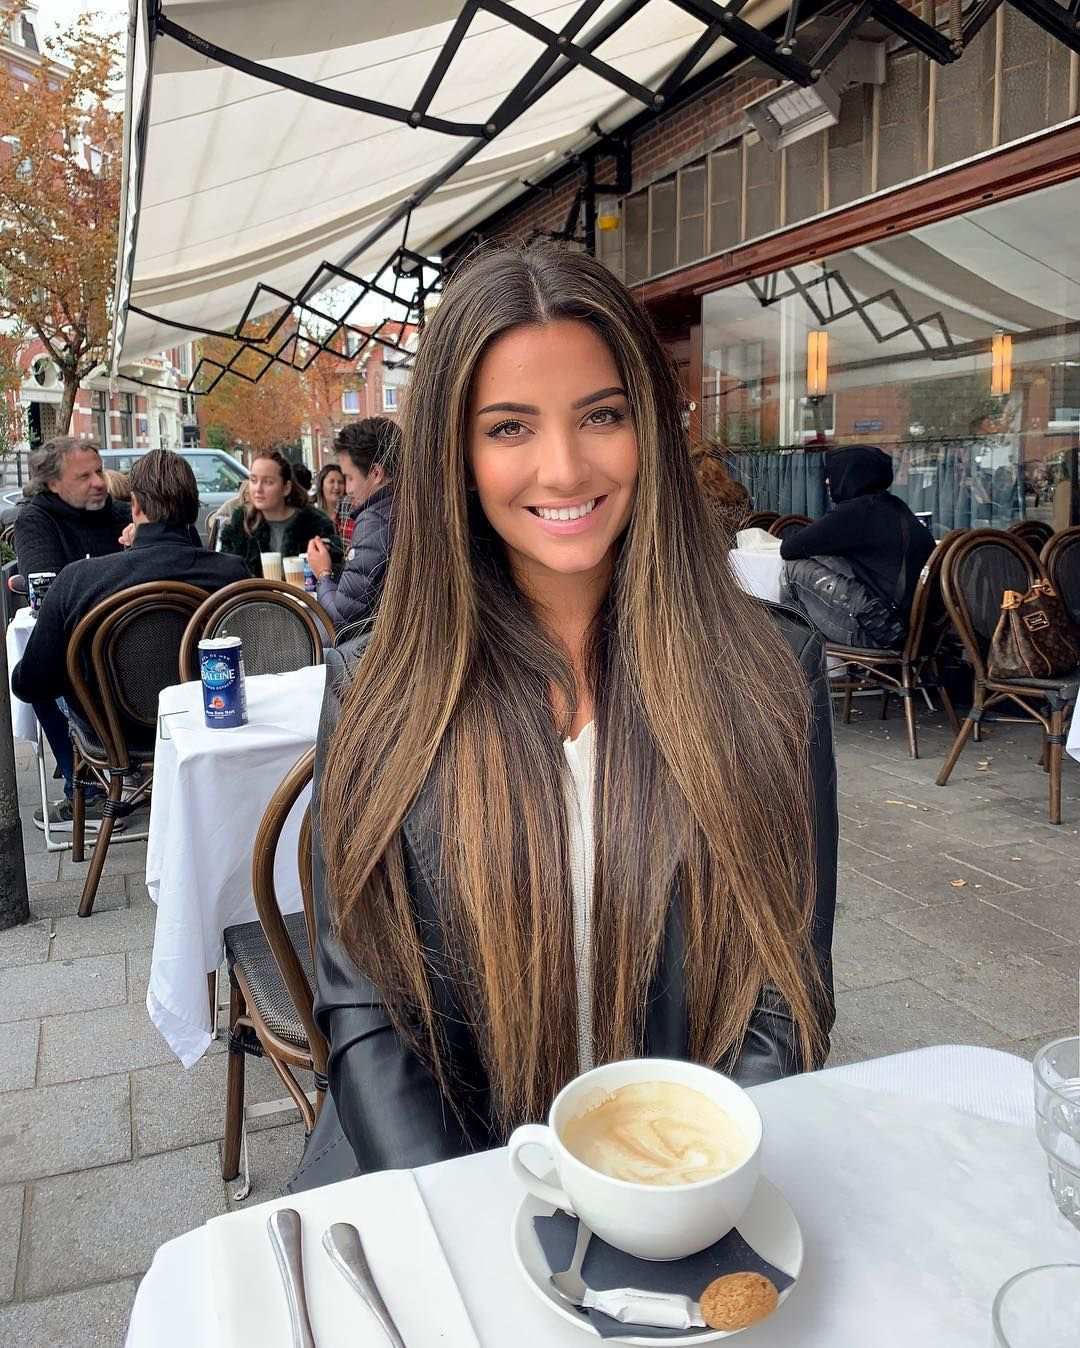 """Stephanie Abu-Sbeih on Instagram: """"Probably the last time sitting outside drinking coffee in Amsterdam this year 🍁"""""""